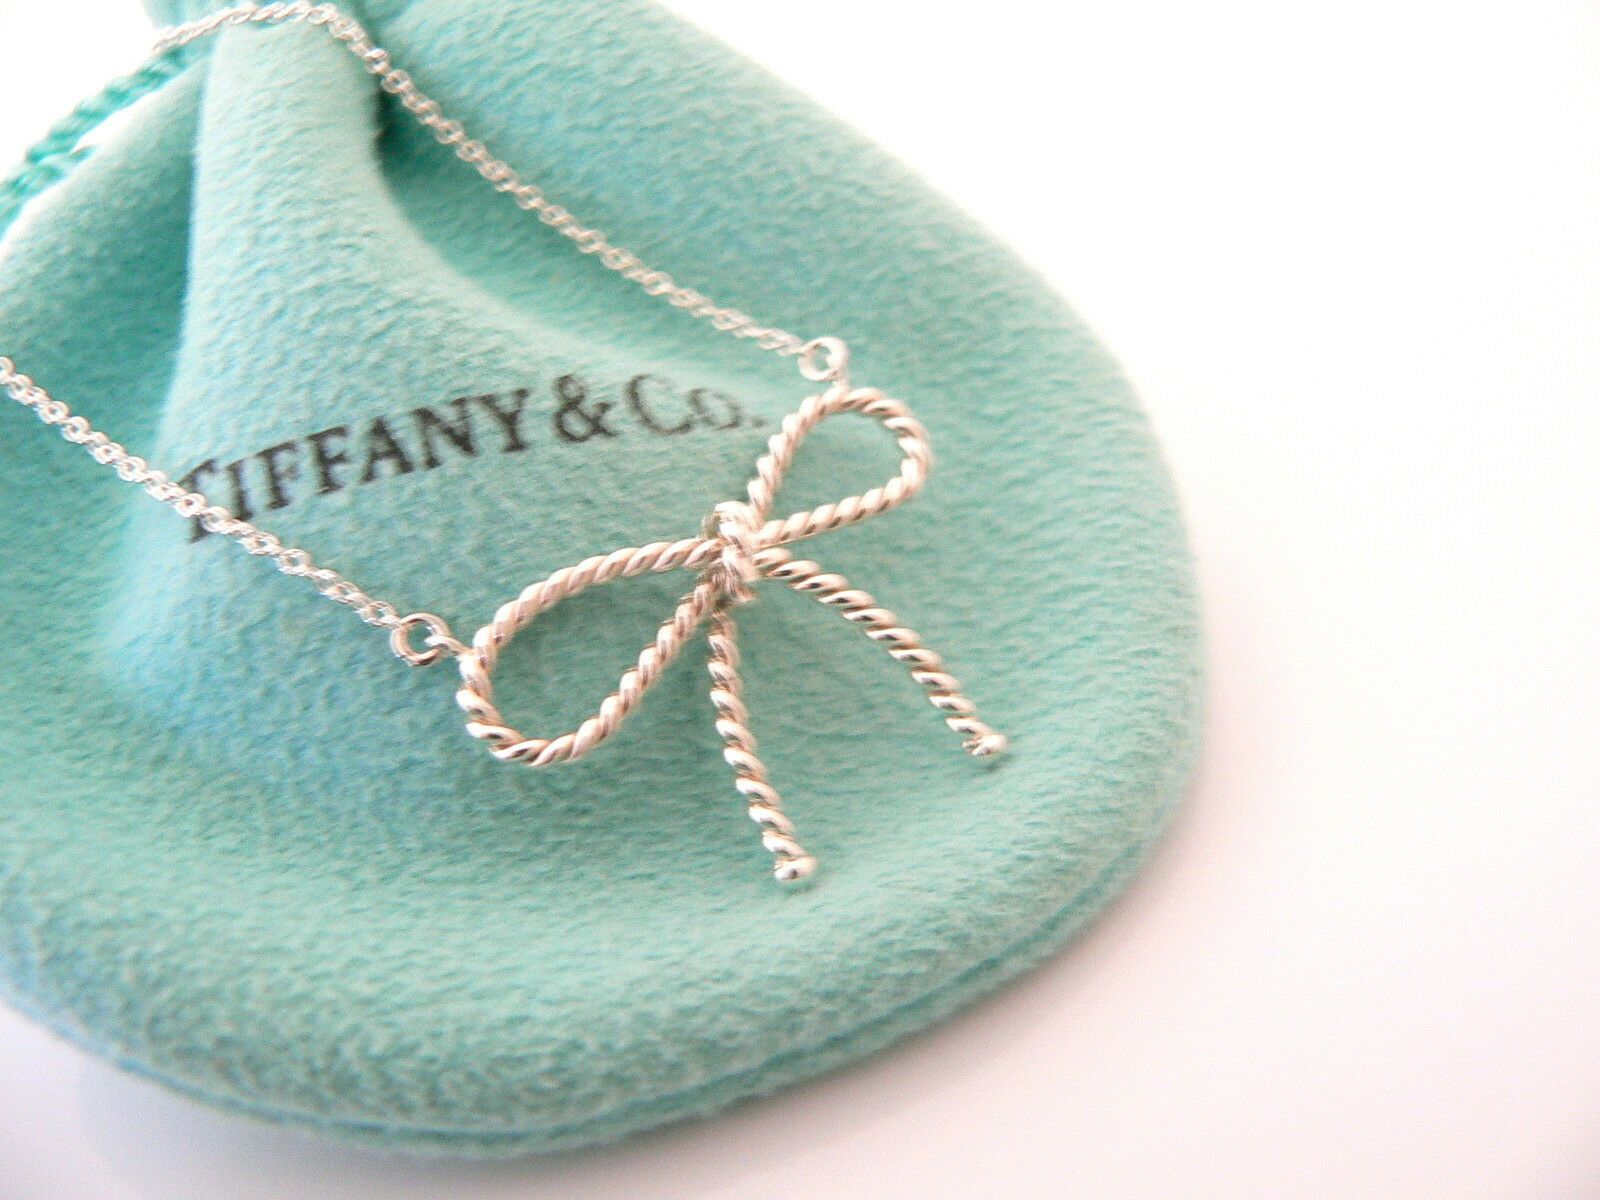 Tiffany & Co Silver Twisted Ribbon Bow Necklace Pendant Charm Chain Gift Pouch